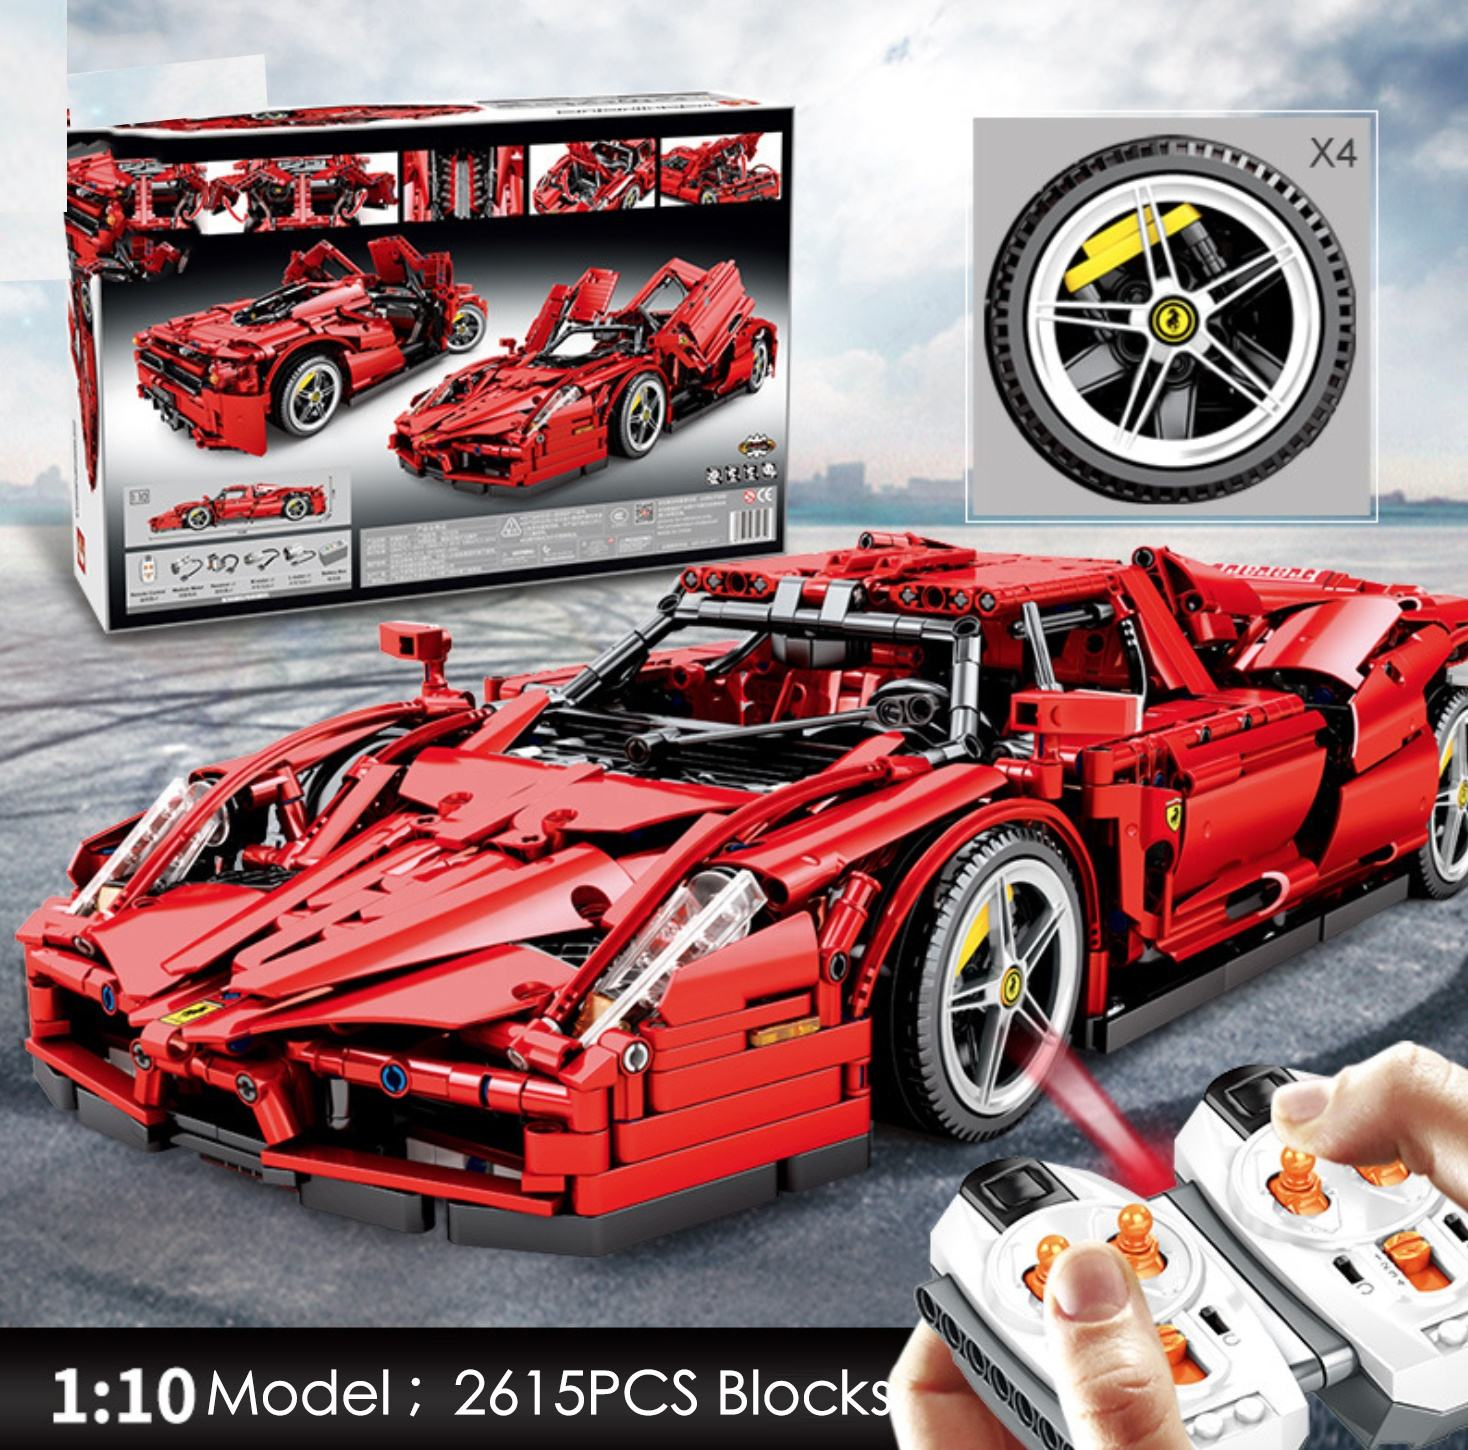 Fe rrari Enzo Model block 1:10 Compatible with Technic Legoing RC Super Racing Car Building Blocks toys for children